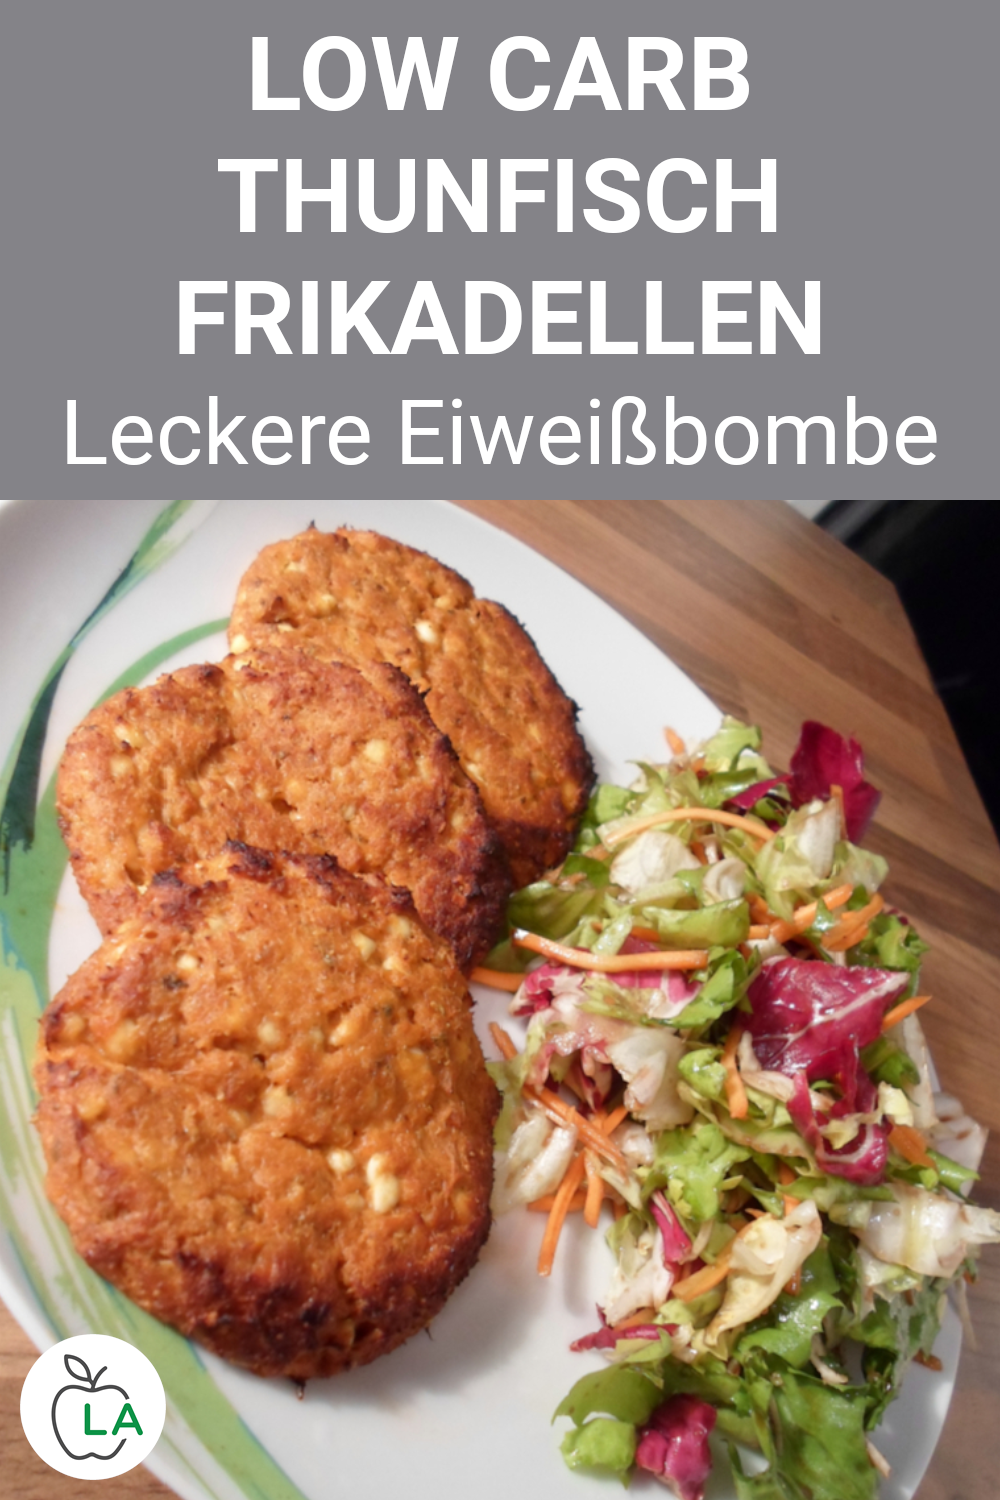 Thunfisch Frikadellen - Low Carb Abendessen ohne Kohlenhydrate,  #Abendessen #Carb #Fitness #Frikade...